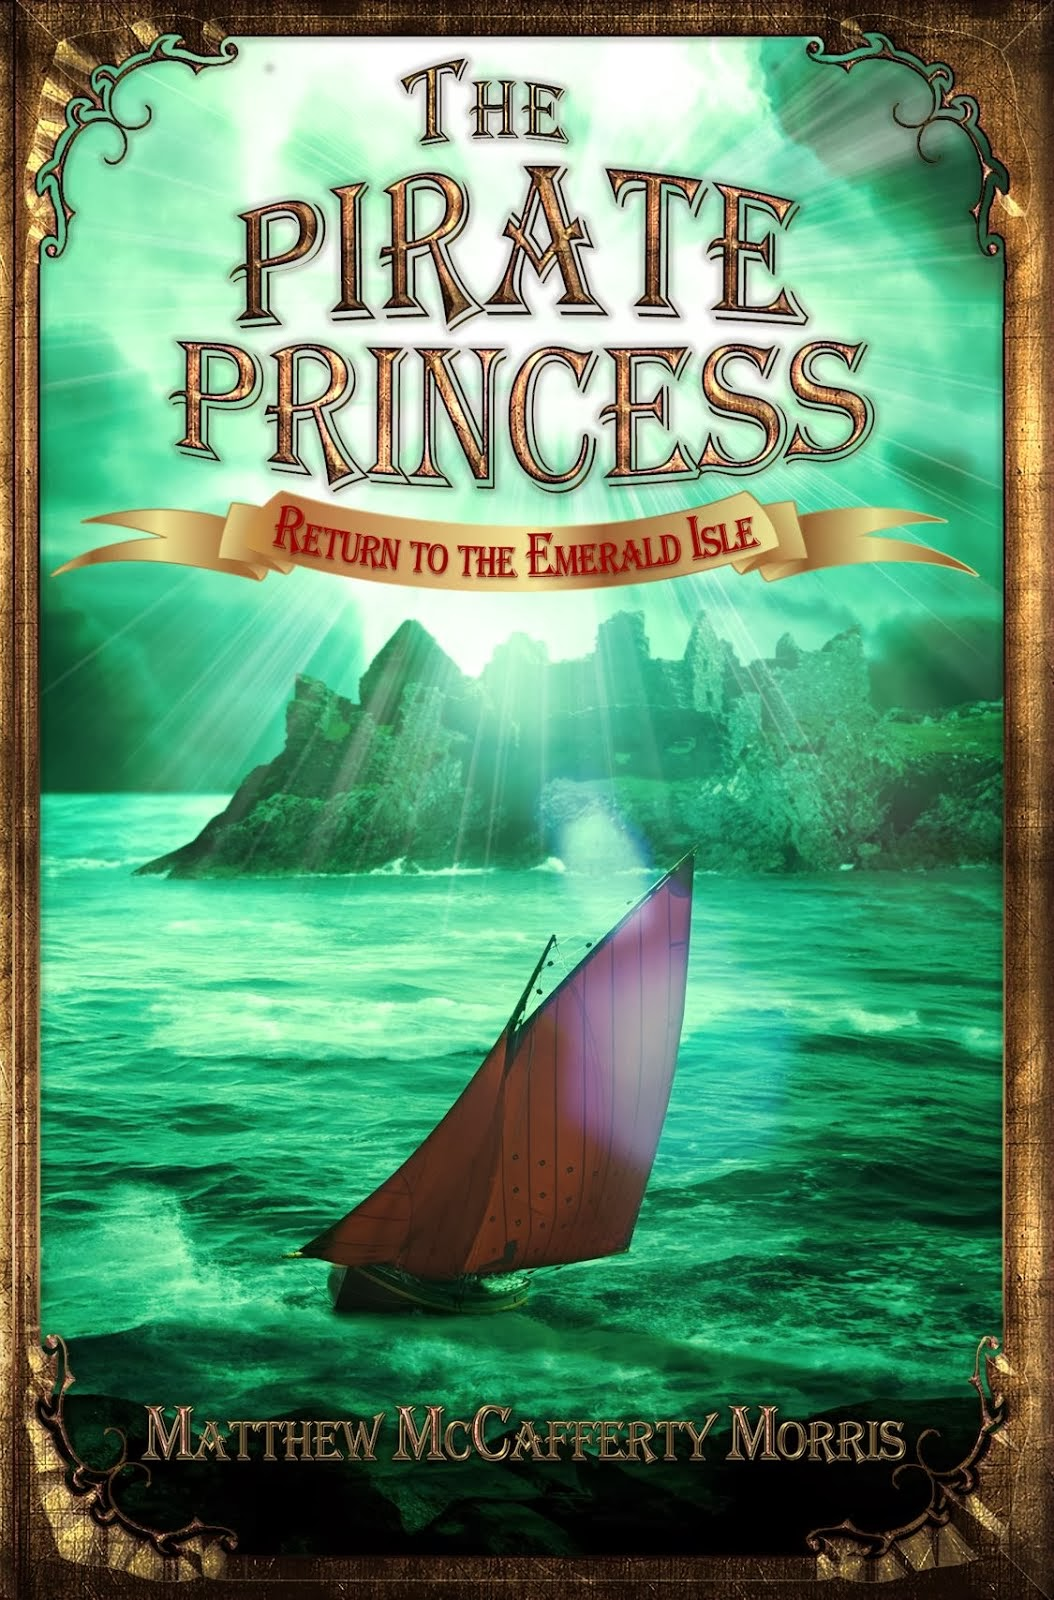 The Pirate Princess Novel